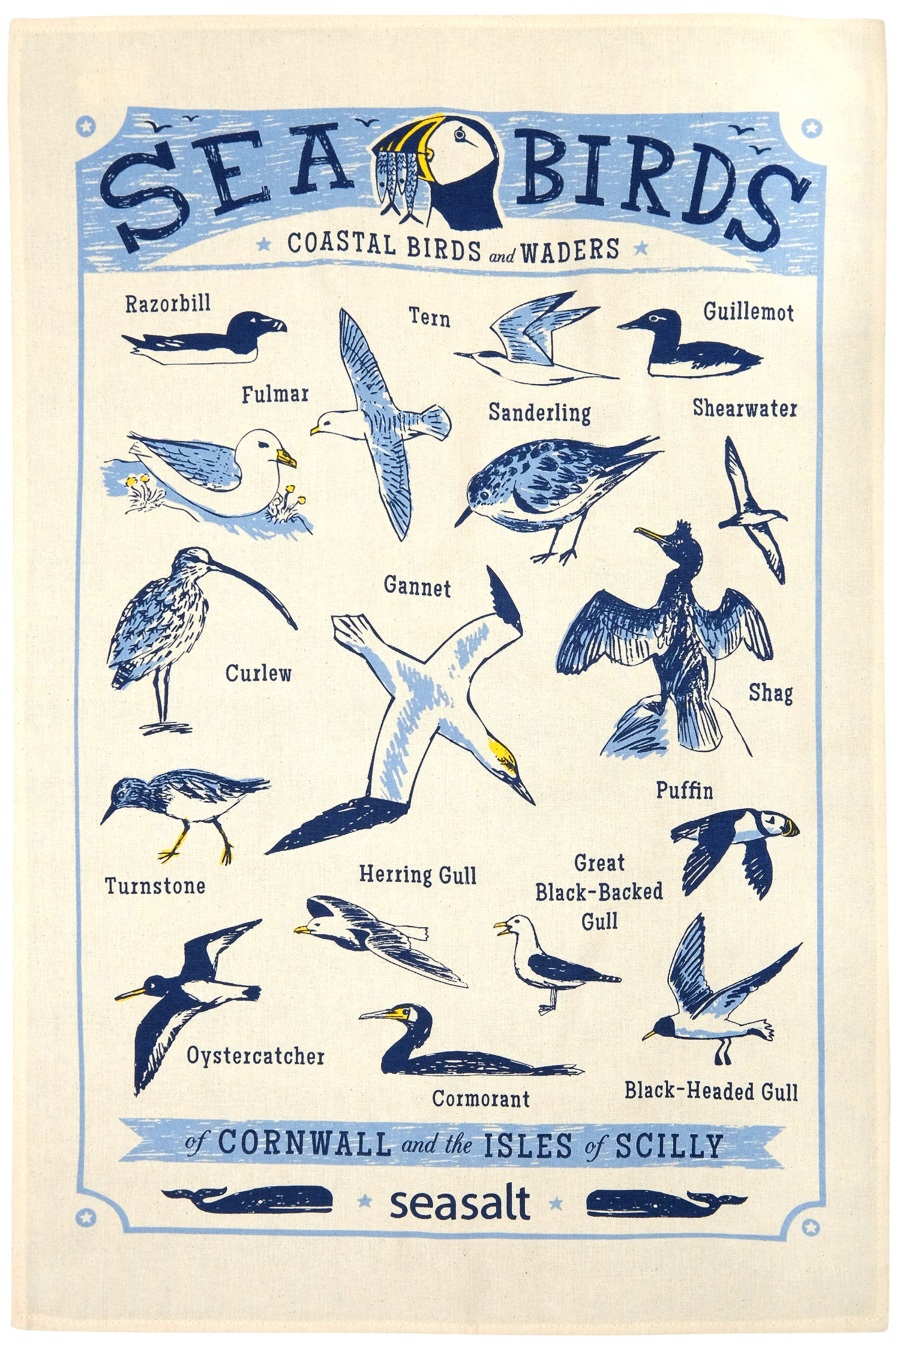 Sea birds, coastal birds and waders of Cornwall and the Isles of Scilly. Printed Tea towel, illustration by Matt Johnson for Seasalt Cornwall